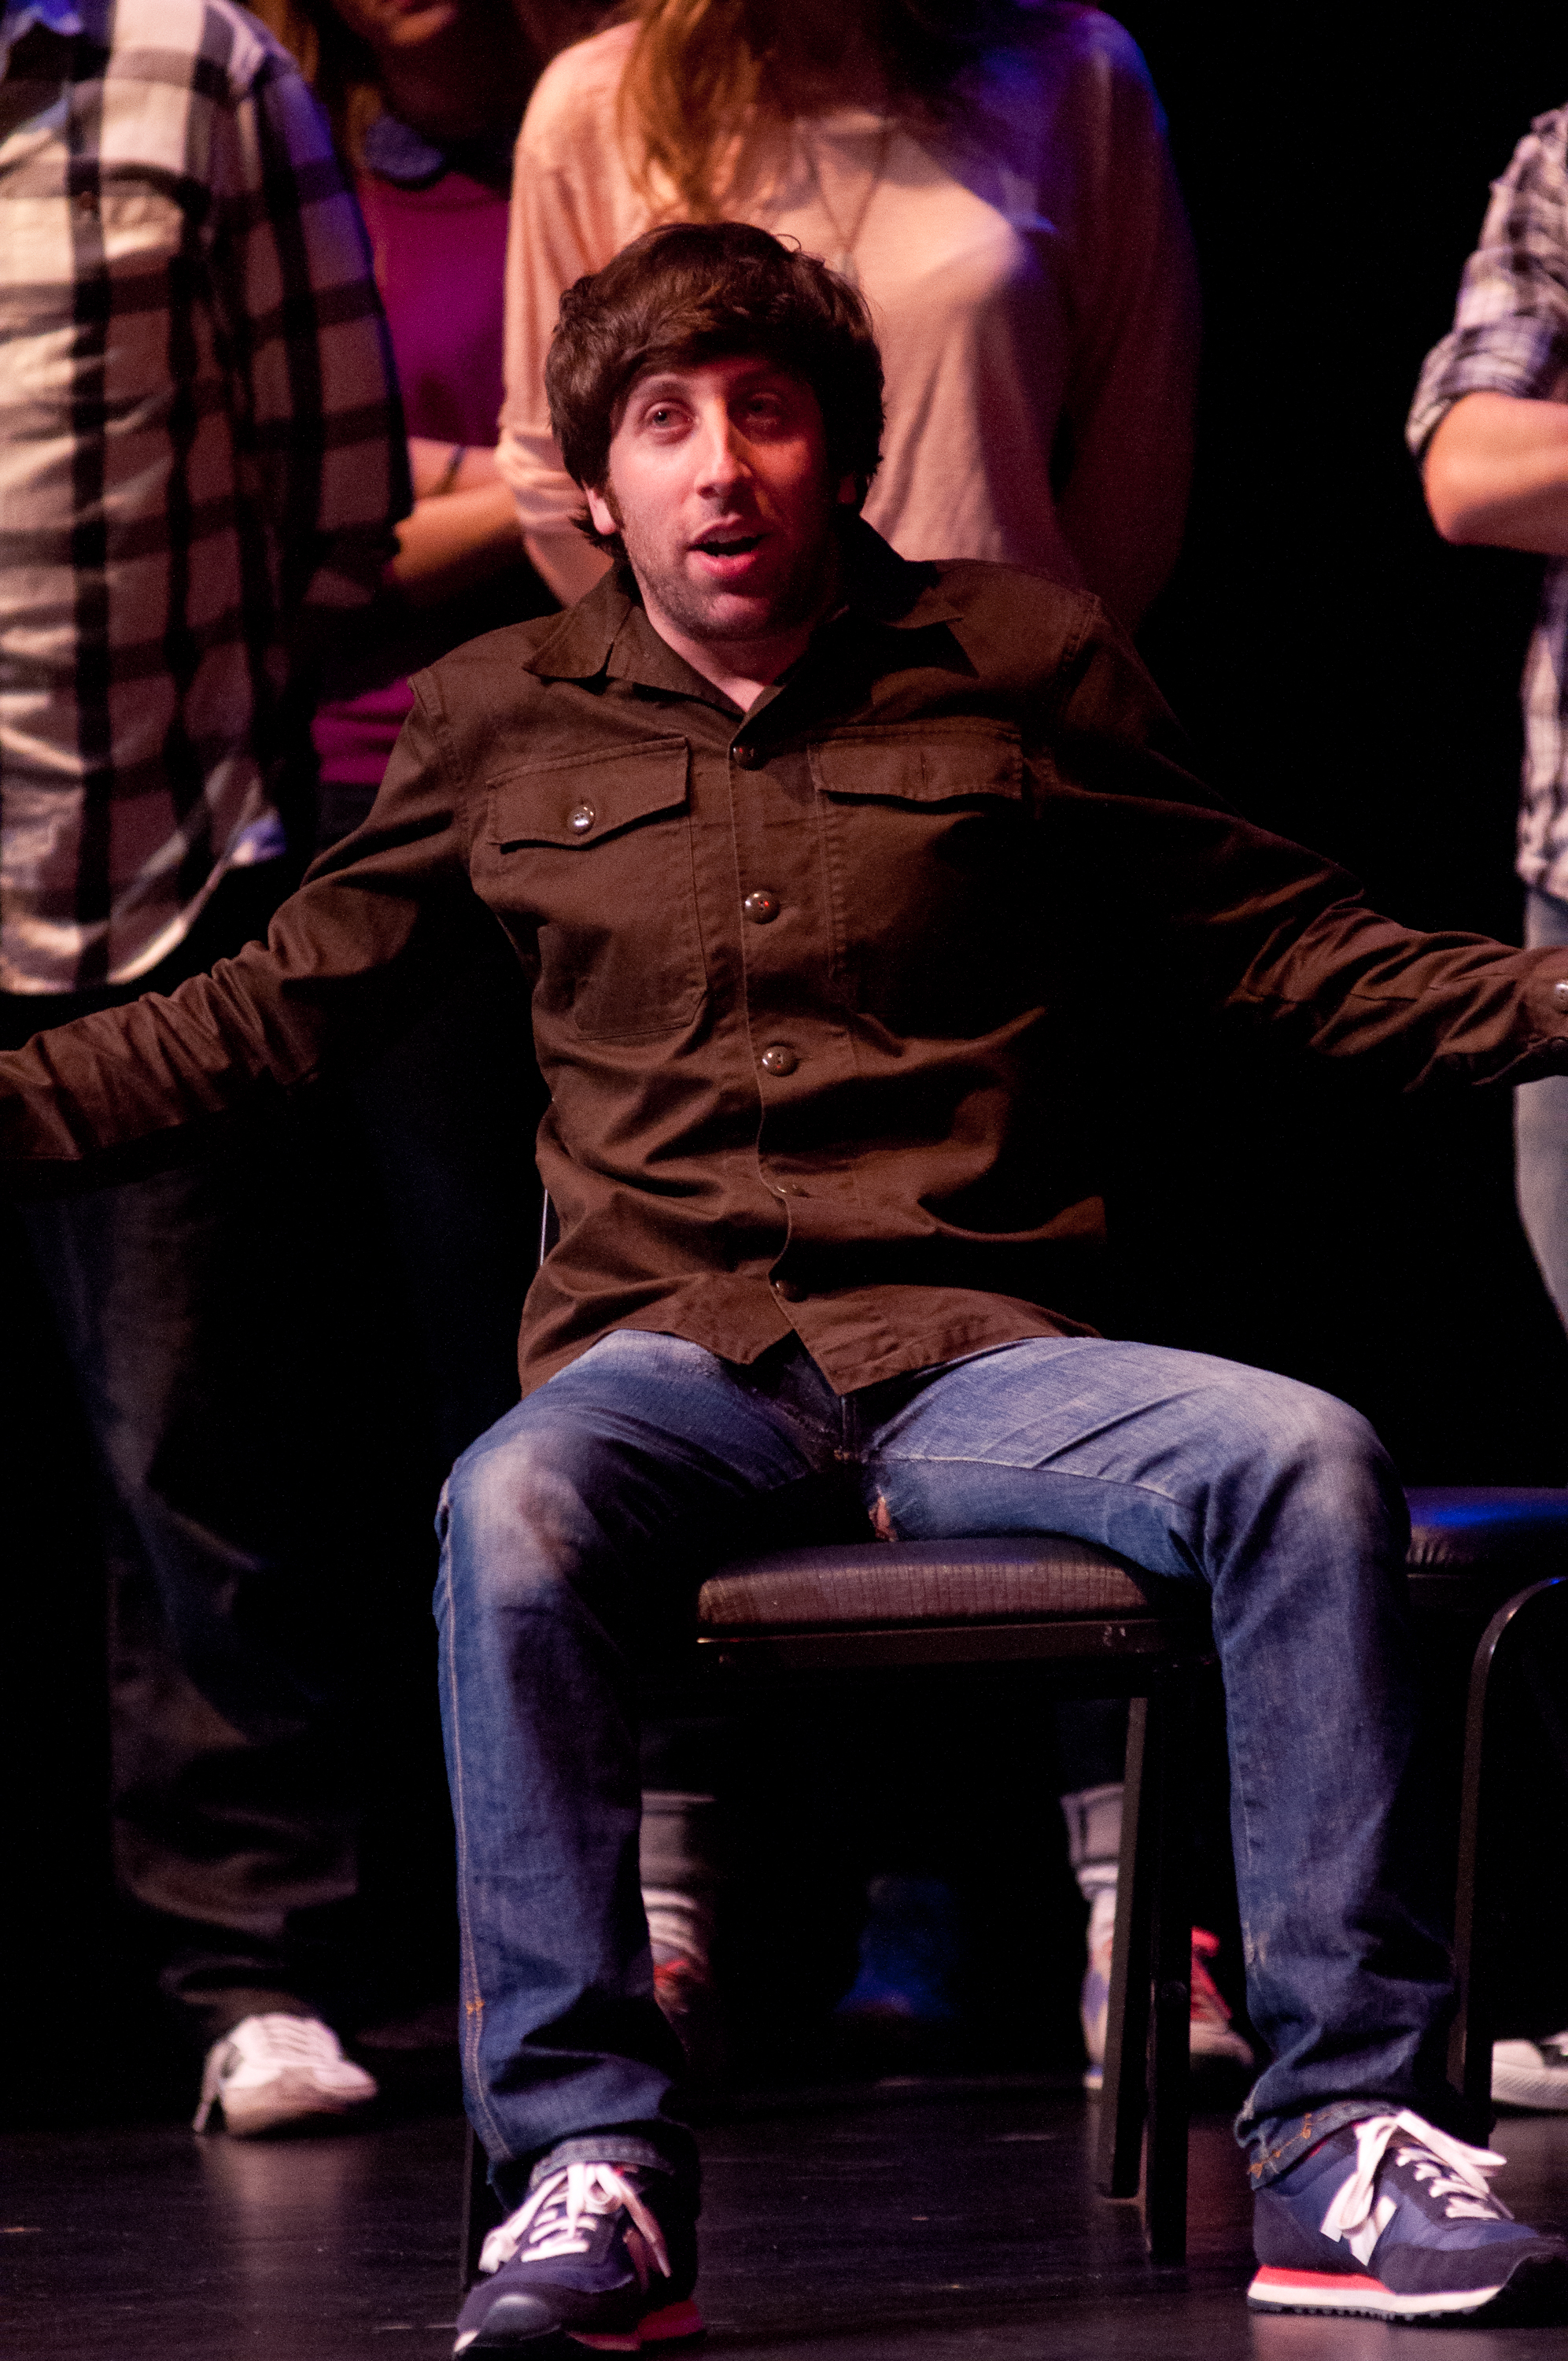 Simon Helberg at Theme Park Improv at SF Sketchfest, February 3, 2012. Photo by Ameen Belbahri.